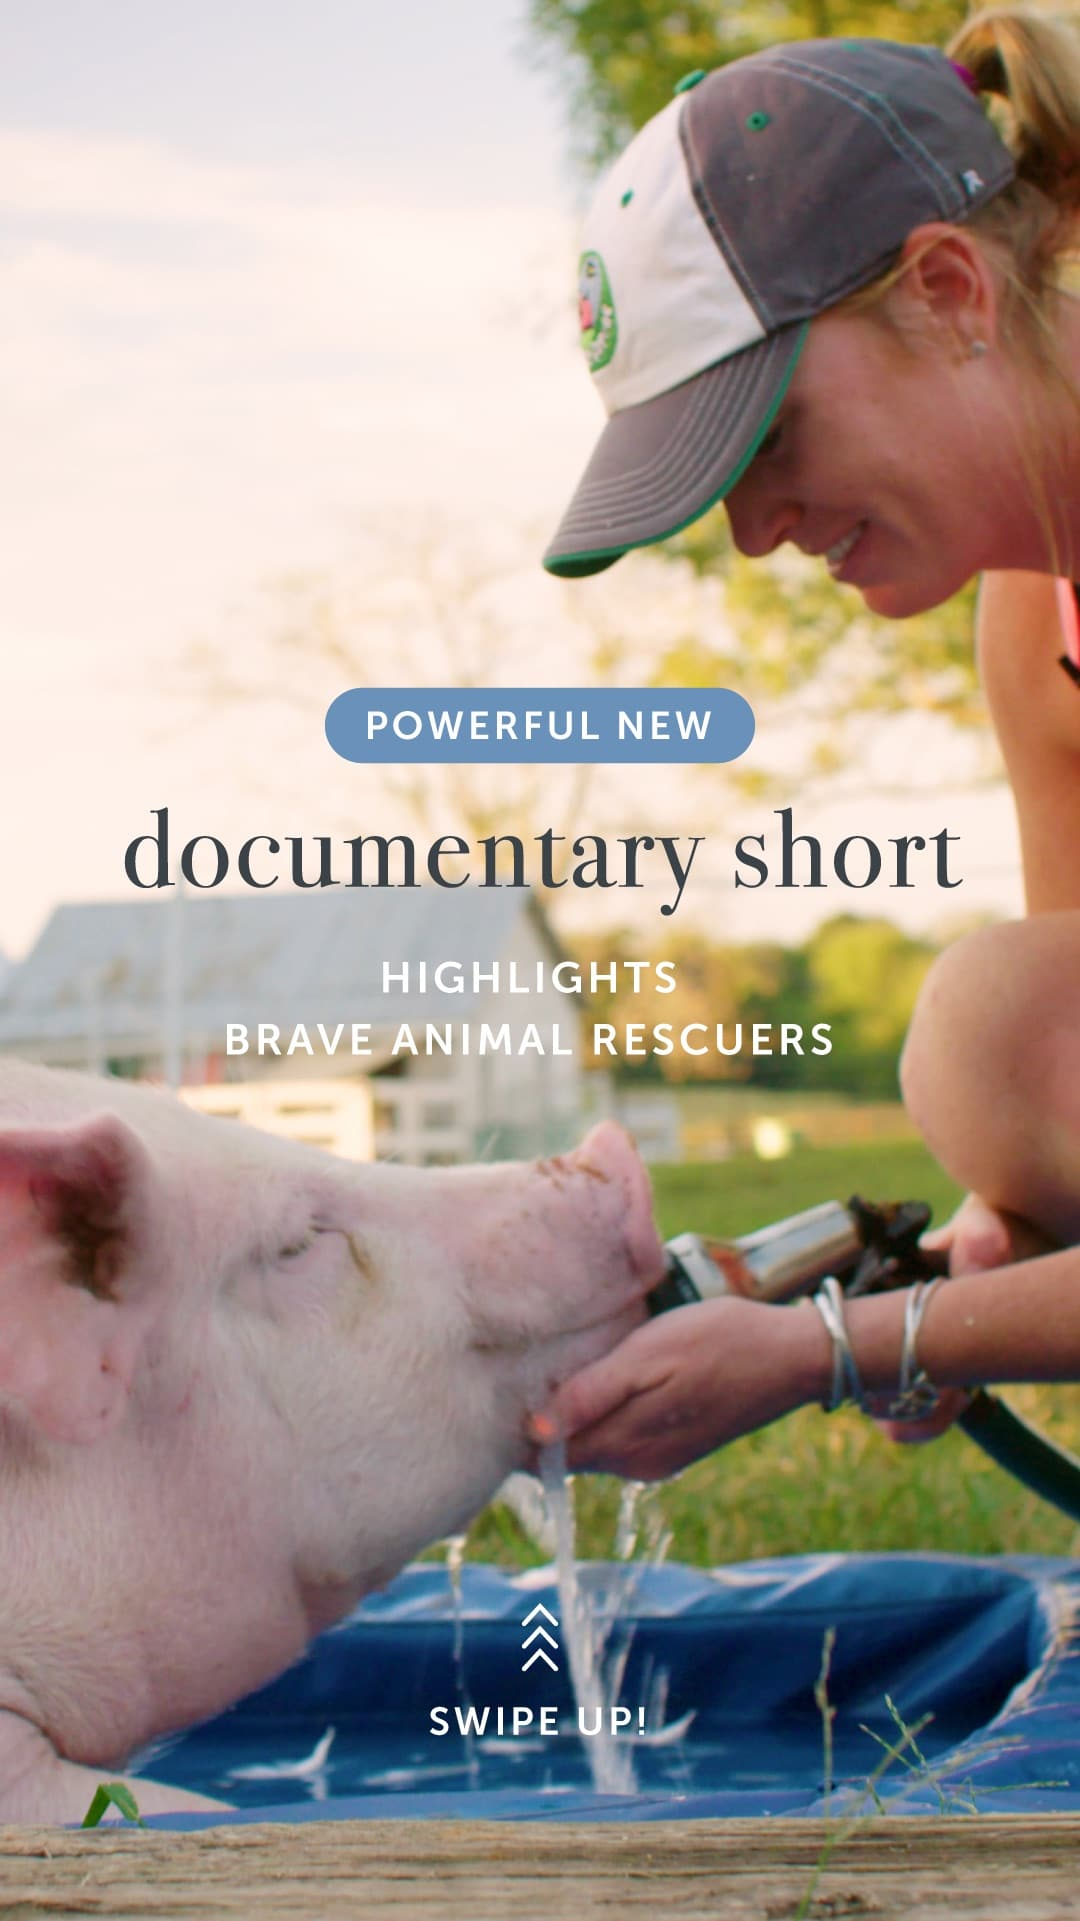 Powerful New Documentary Short Highlights Brave Animal Rescuers